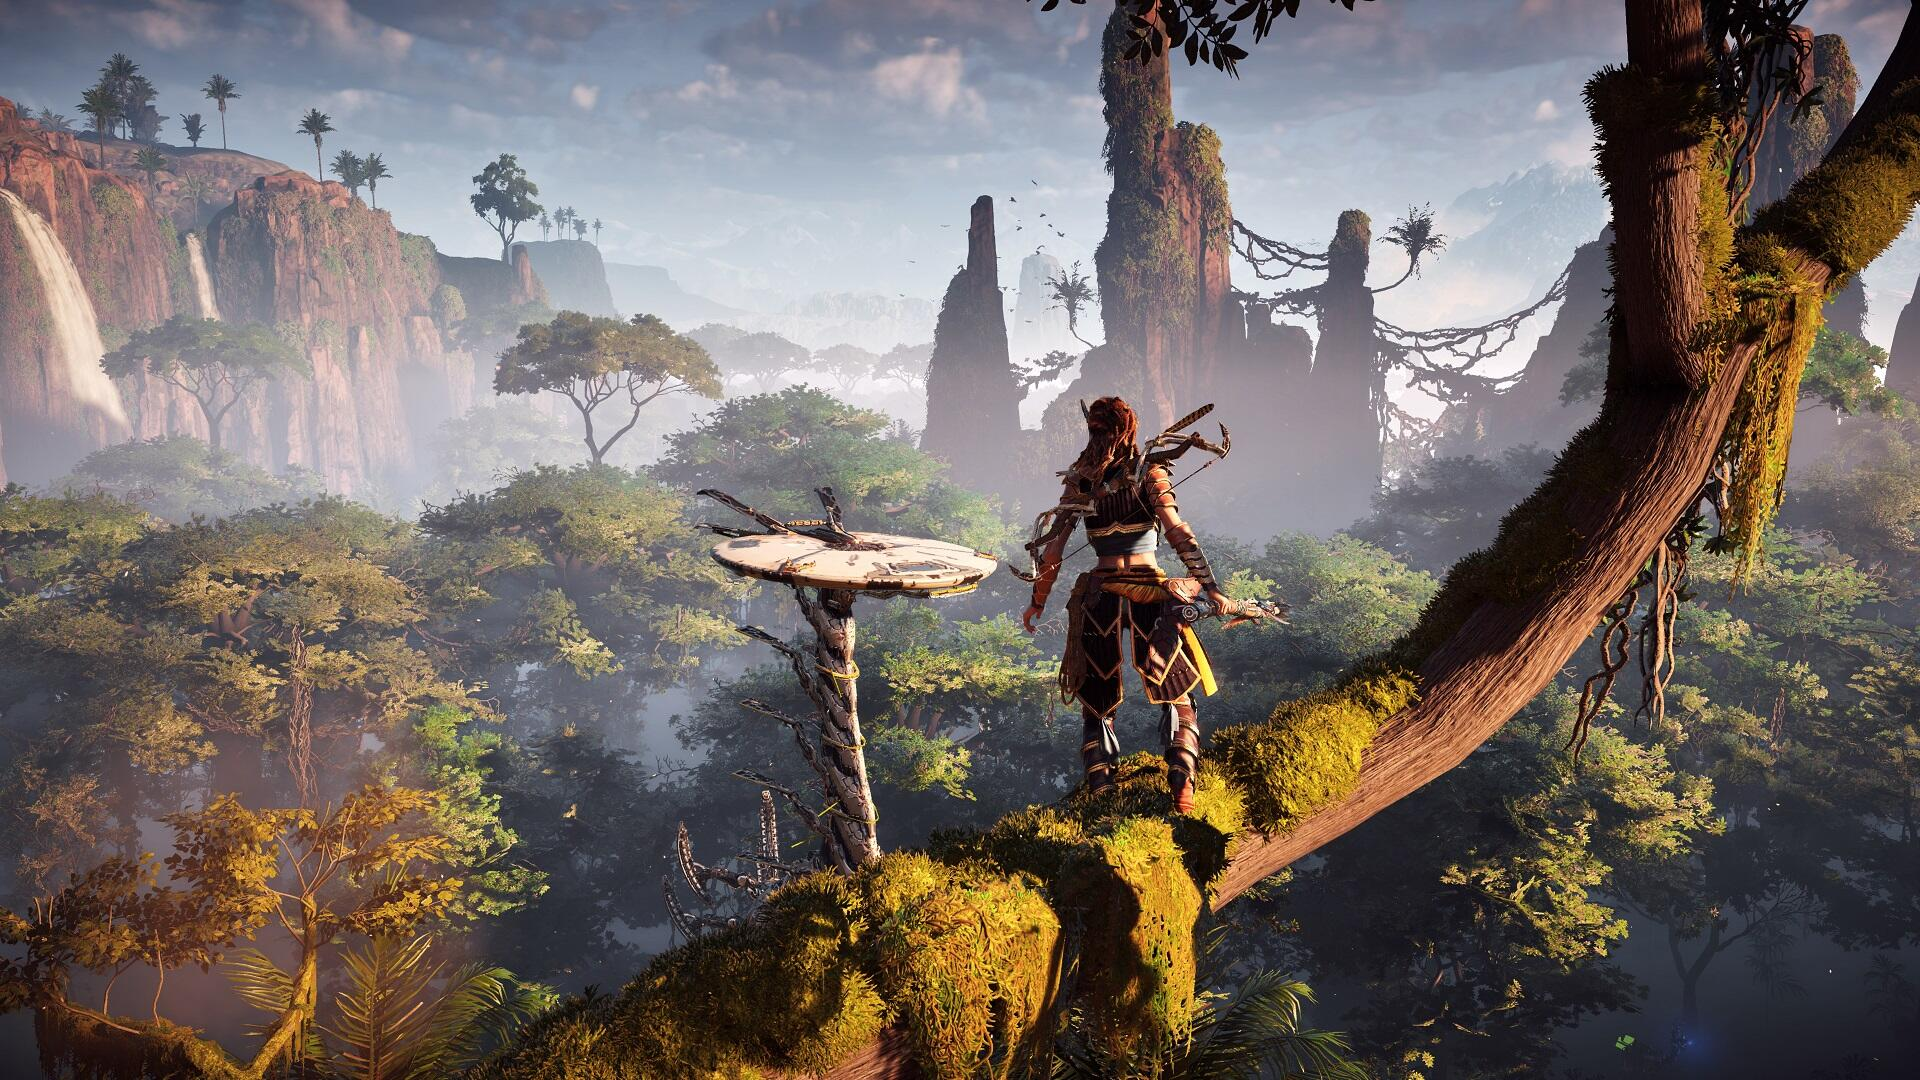 Horizon Zero Dawn Weapons: How to Get the Best Weapons | USgamer